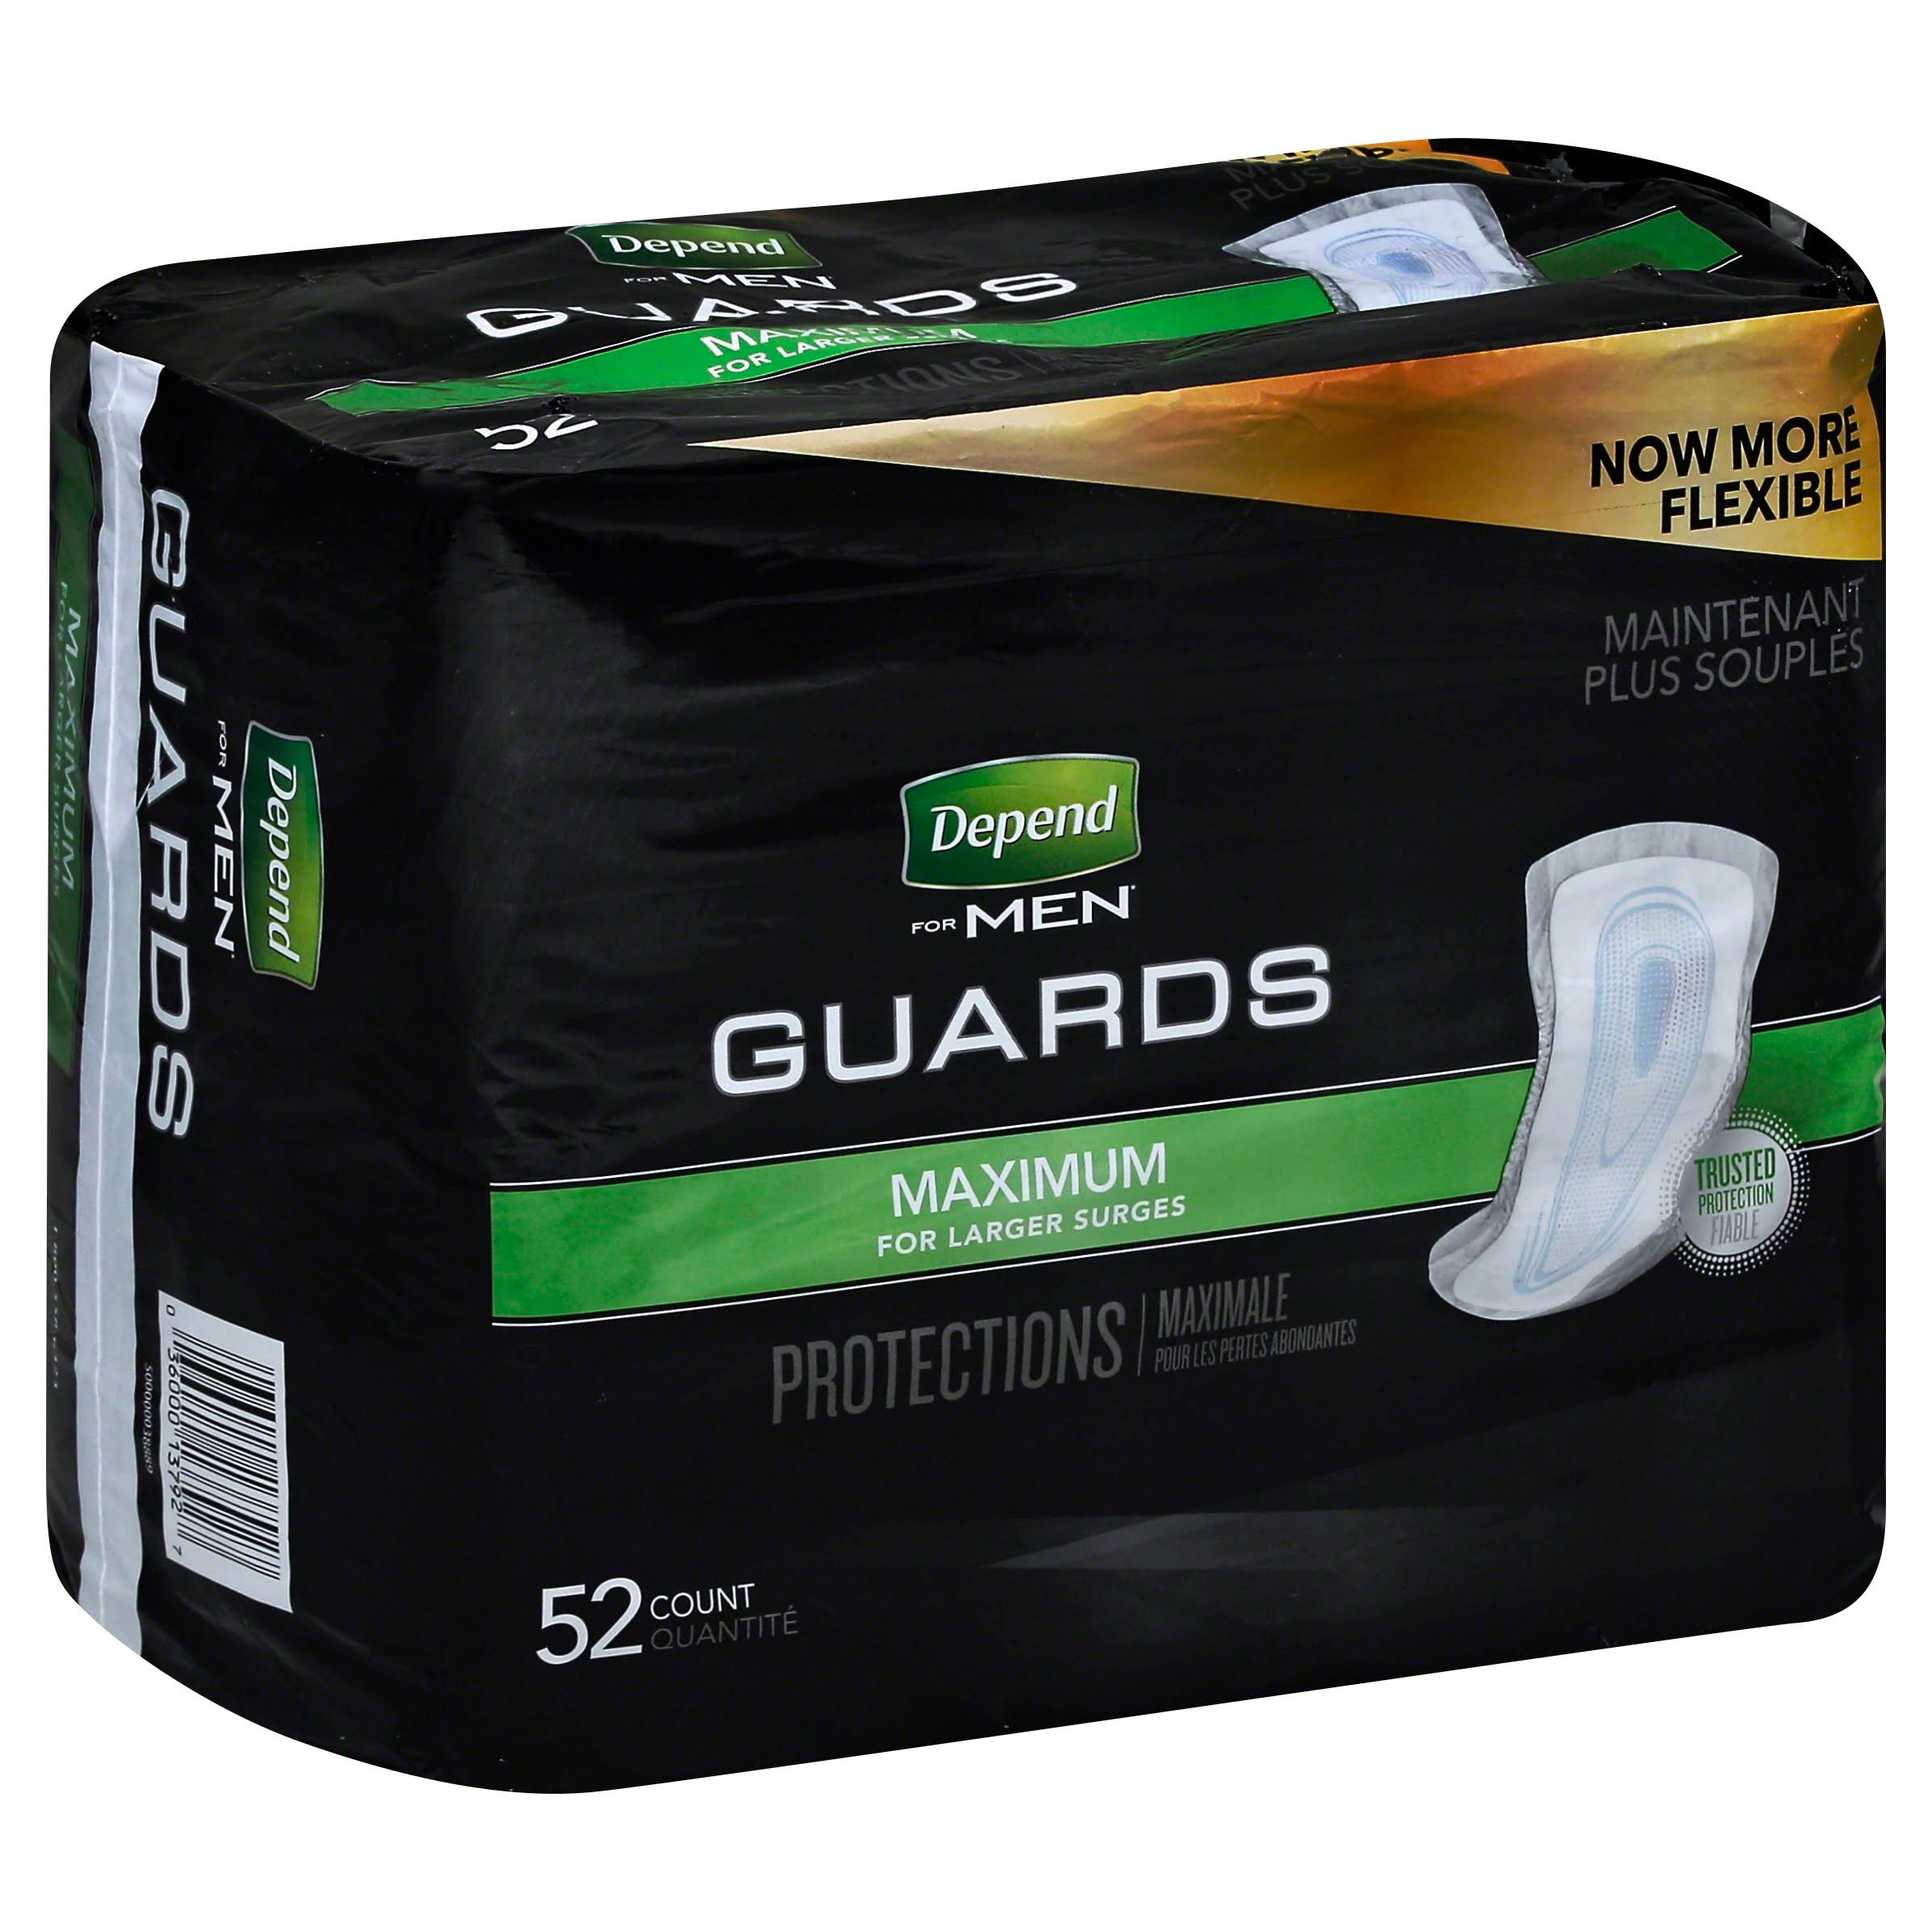 Depend for Men Maximum Absorbency Guards - 52ct